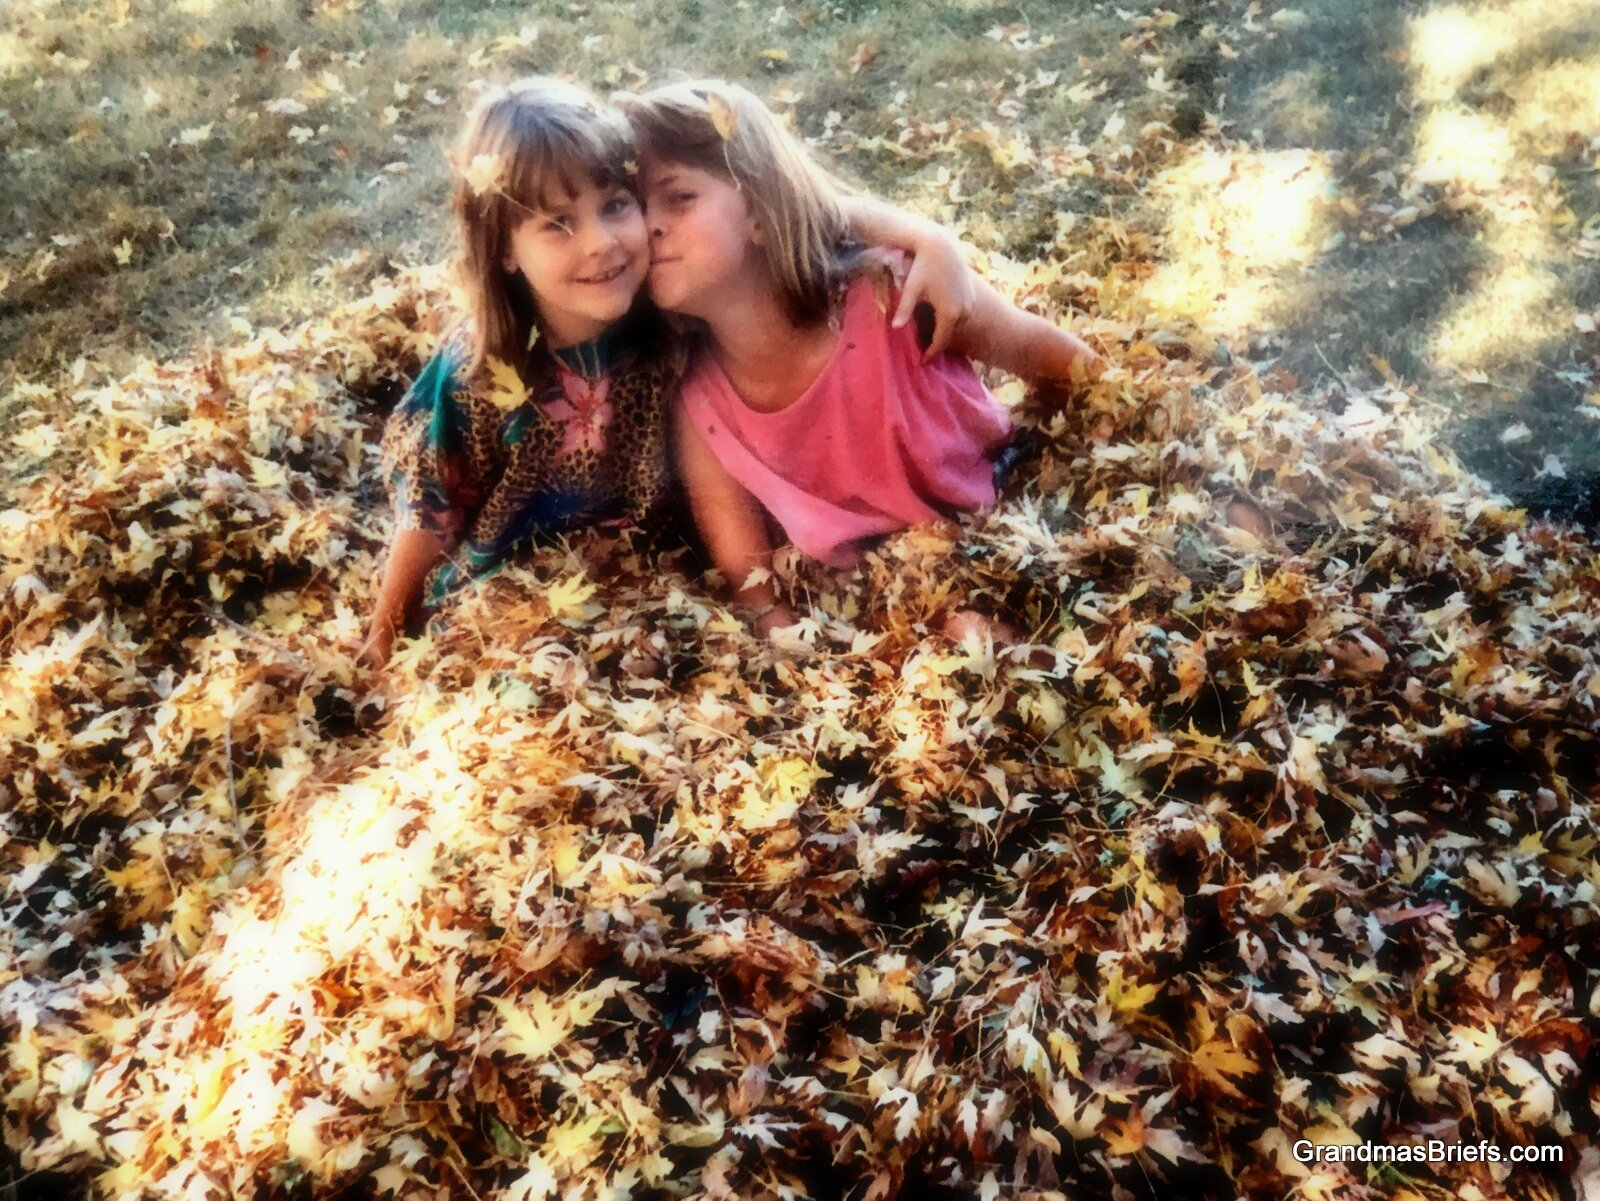 One of my fave fall photos: Andrea (7) and Megan (two months short of 9) in 1992